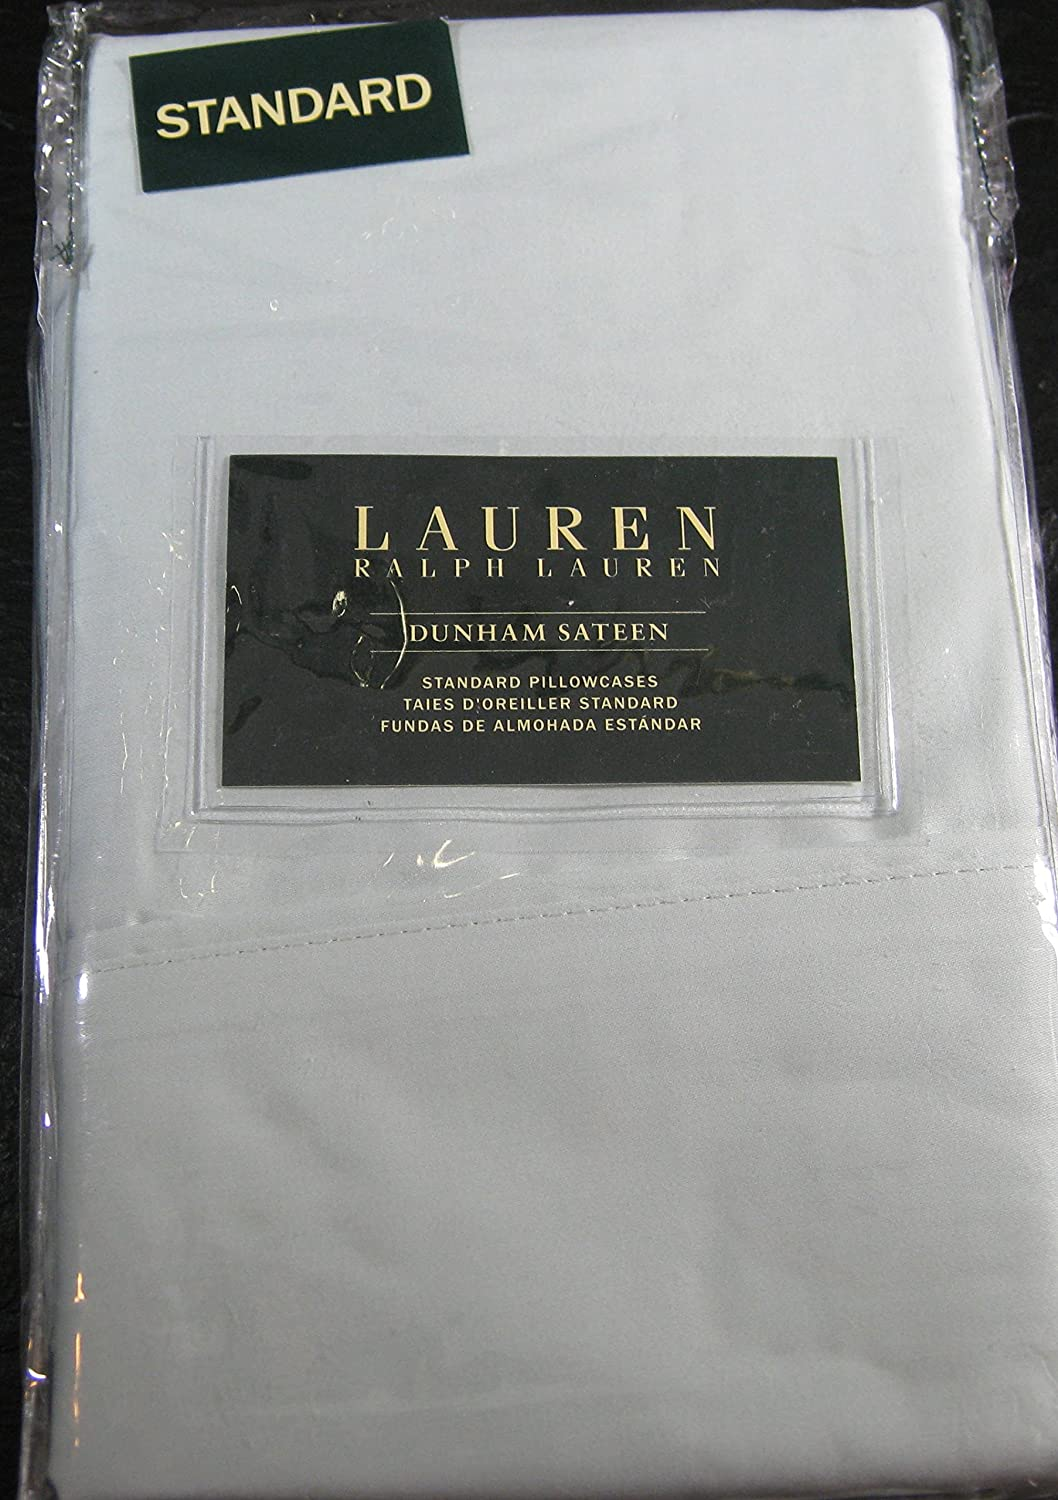 Set of 2 Ralph Lauren Dunham Sateen Standard Pillowcases-Pale Blue-300 Thread Count 100% Cotton-